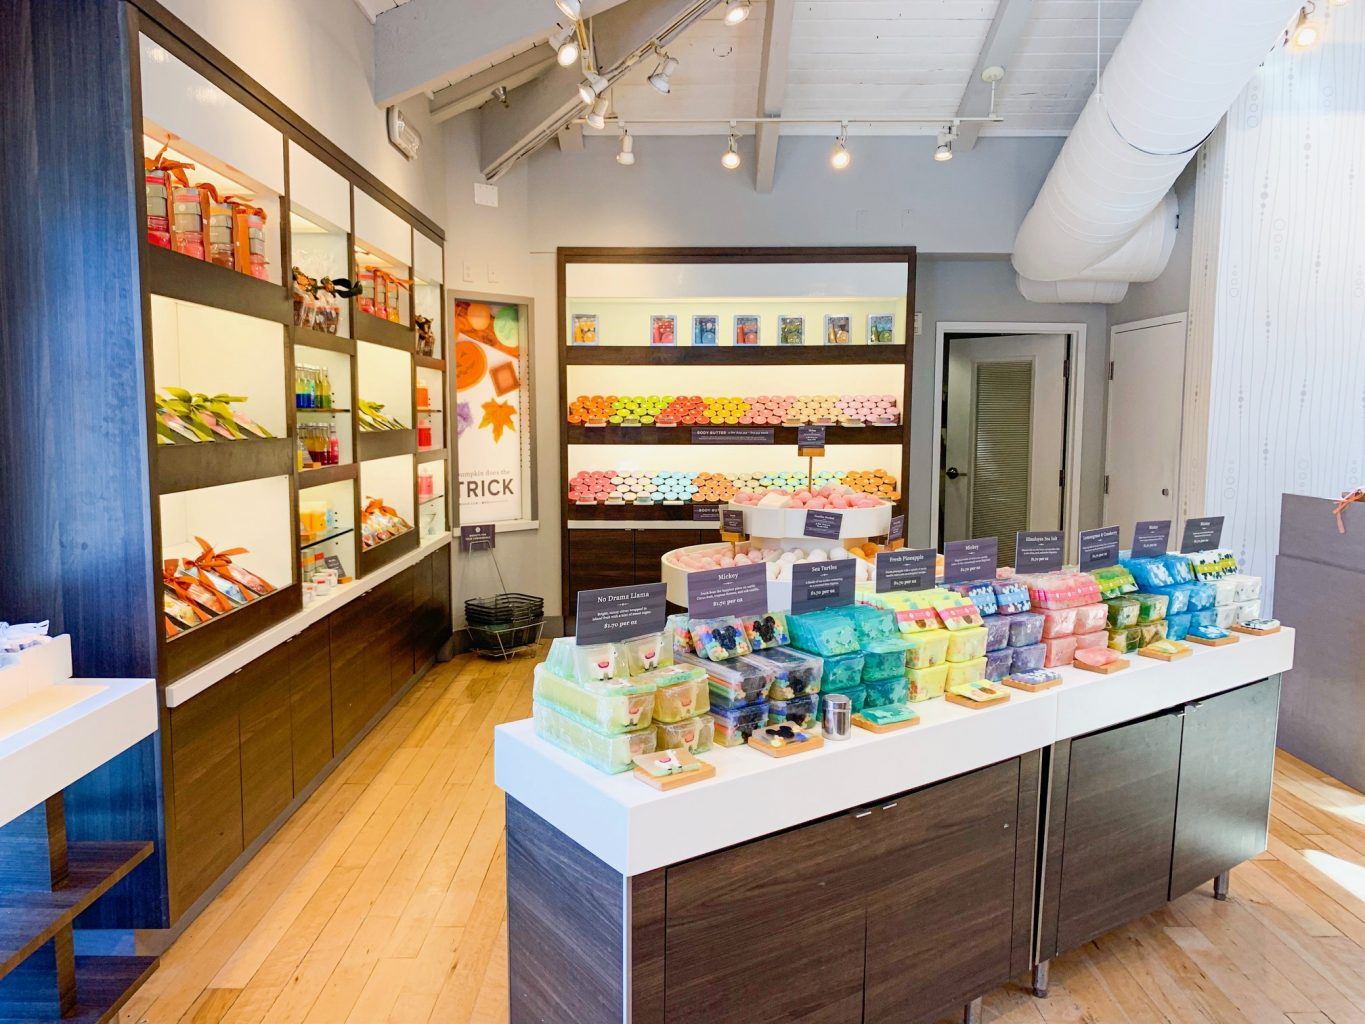 Multi colored soaps displayed on a table in the foreground, with other bath products displayed on shelves in the background